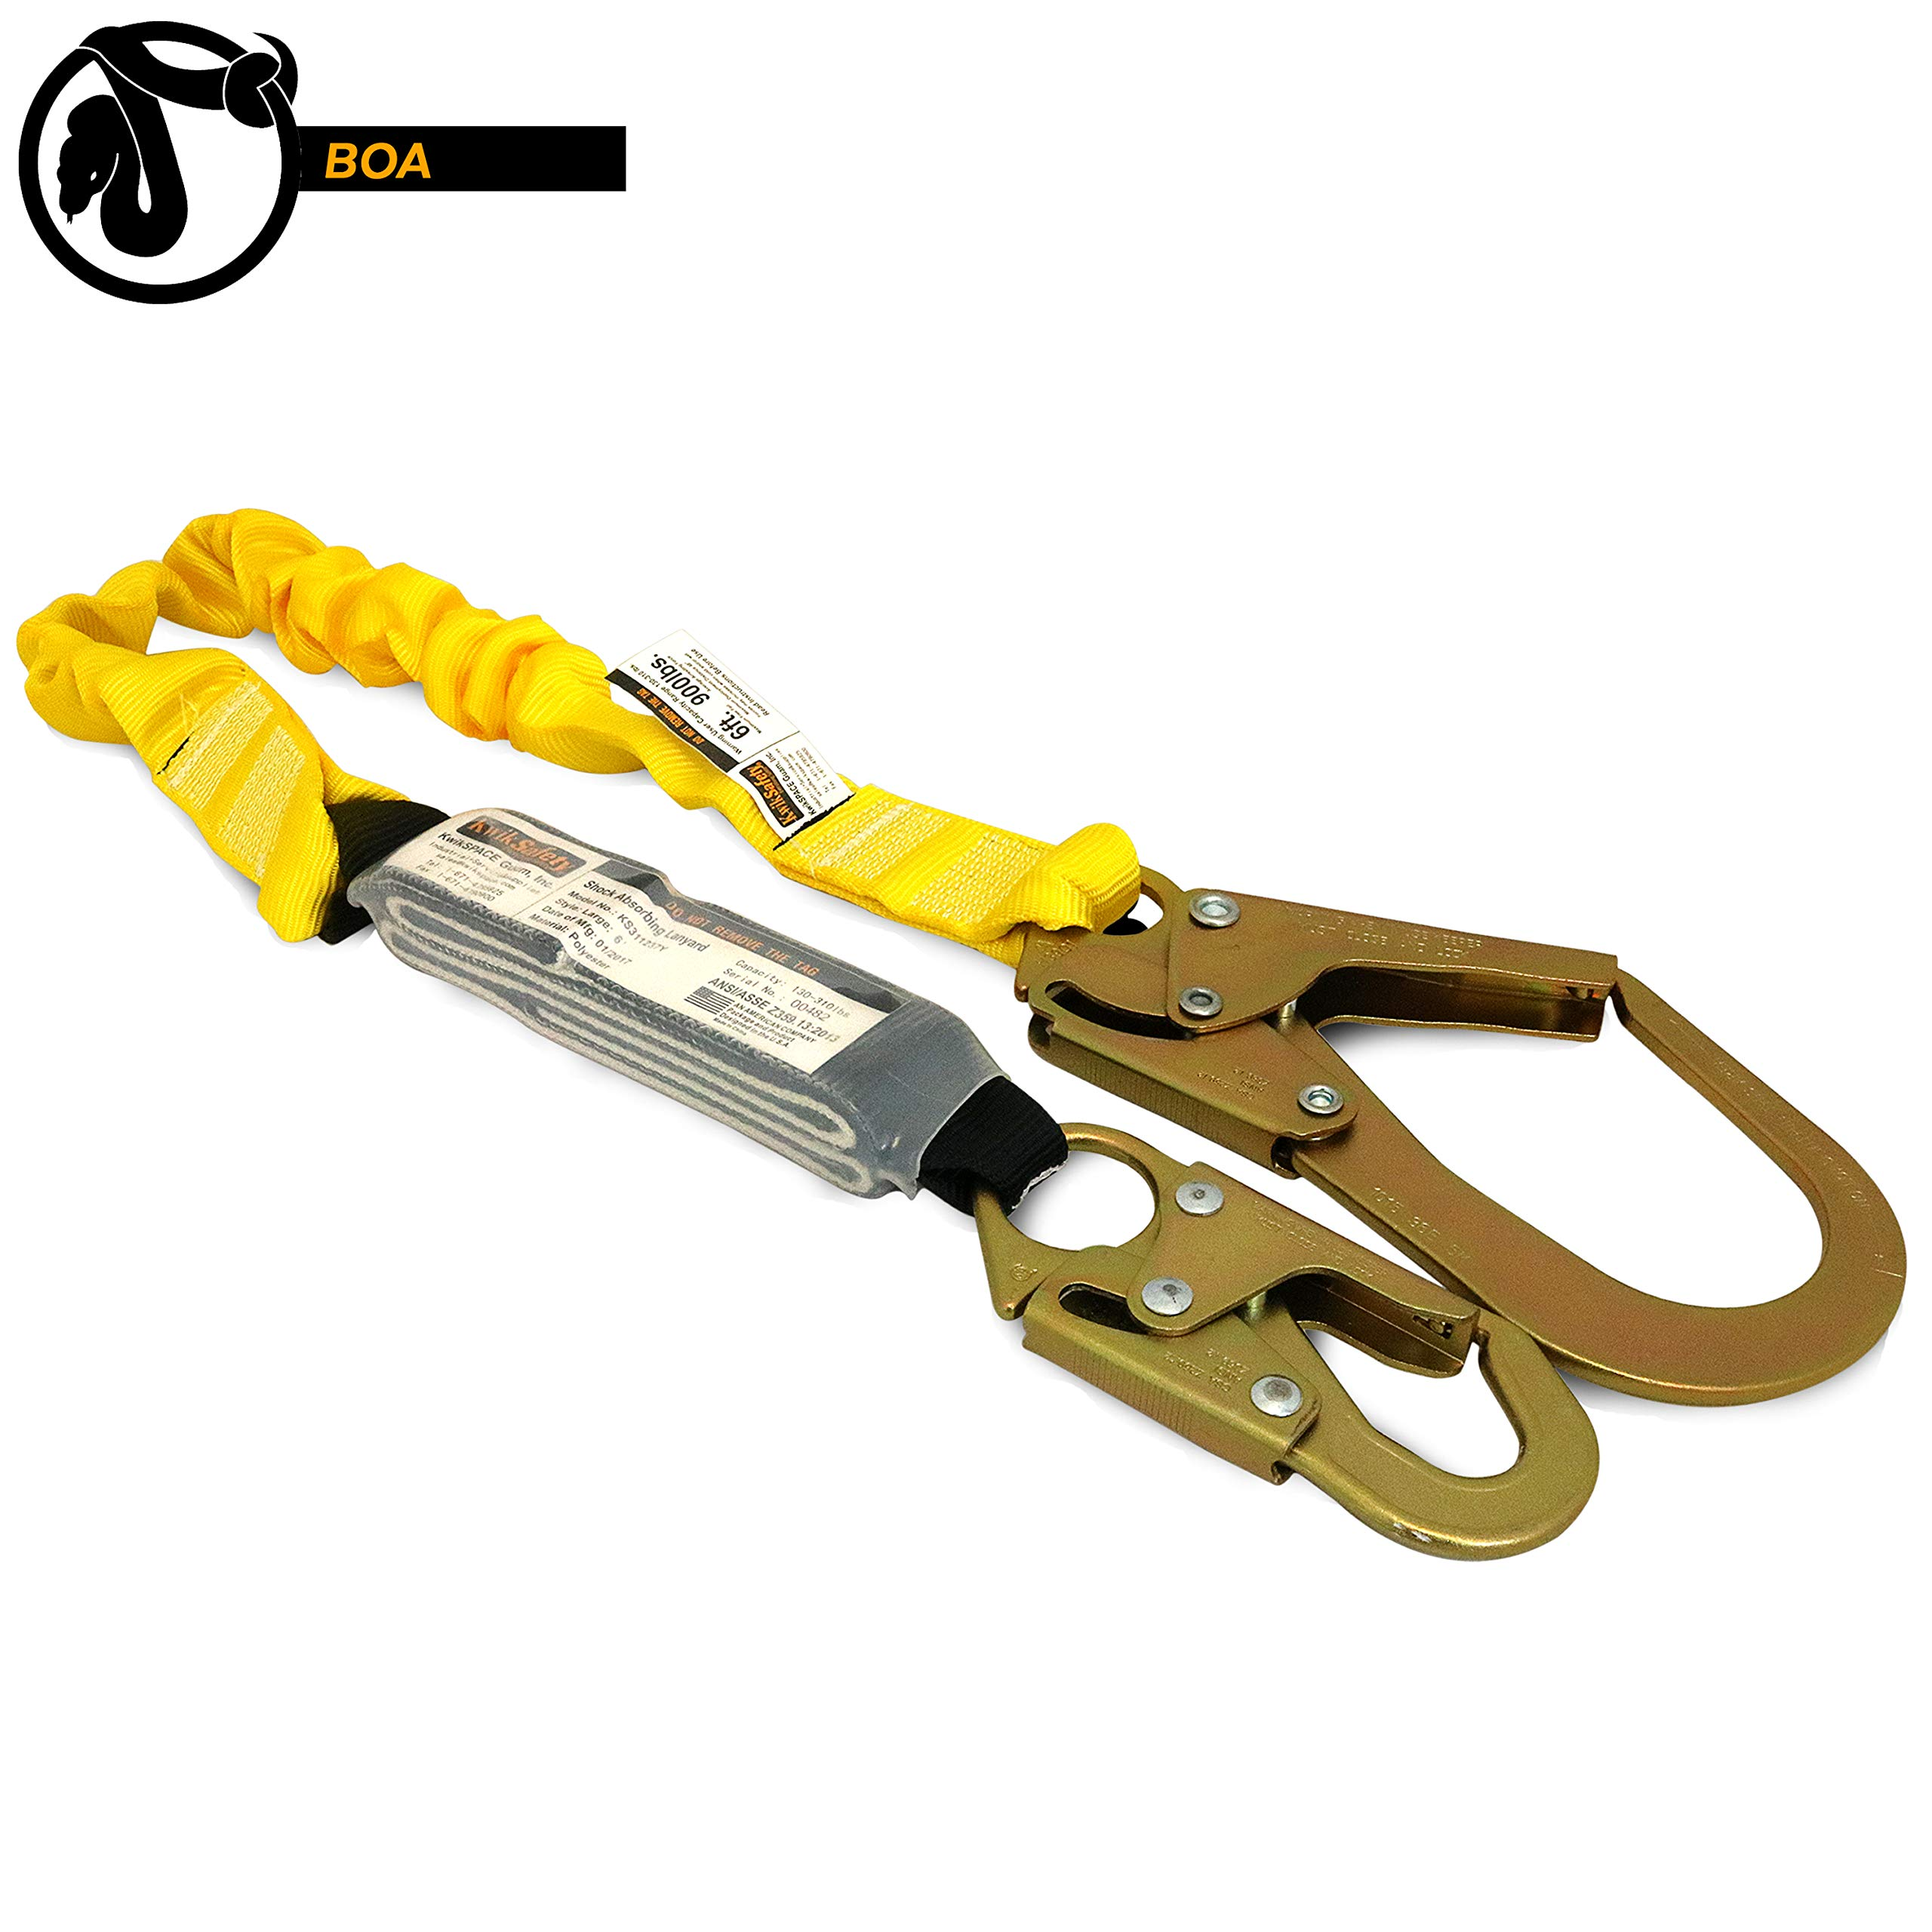 KwikSafety (Charlotte, NC) BOA 1 PACK (External Shock Absorber) Single Leg 6ft Safety Lanyard OSHA ANSI Fall Protection Restraint Equipment Snap Rebar Hook Connectors Construction Arborist Roofing by KwikSafety